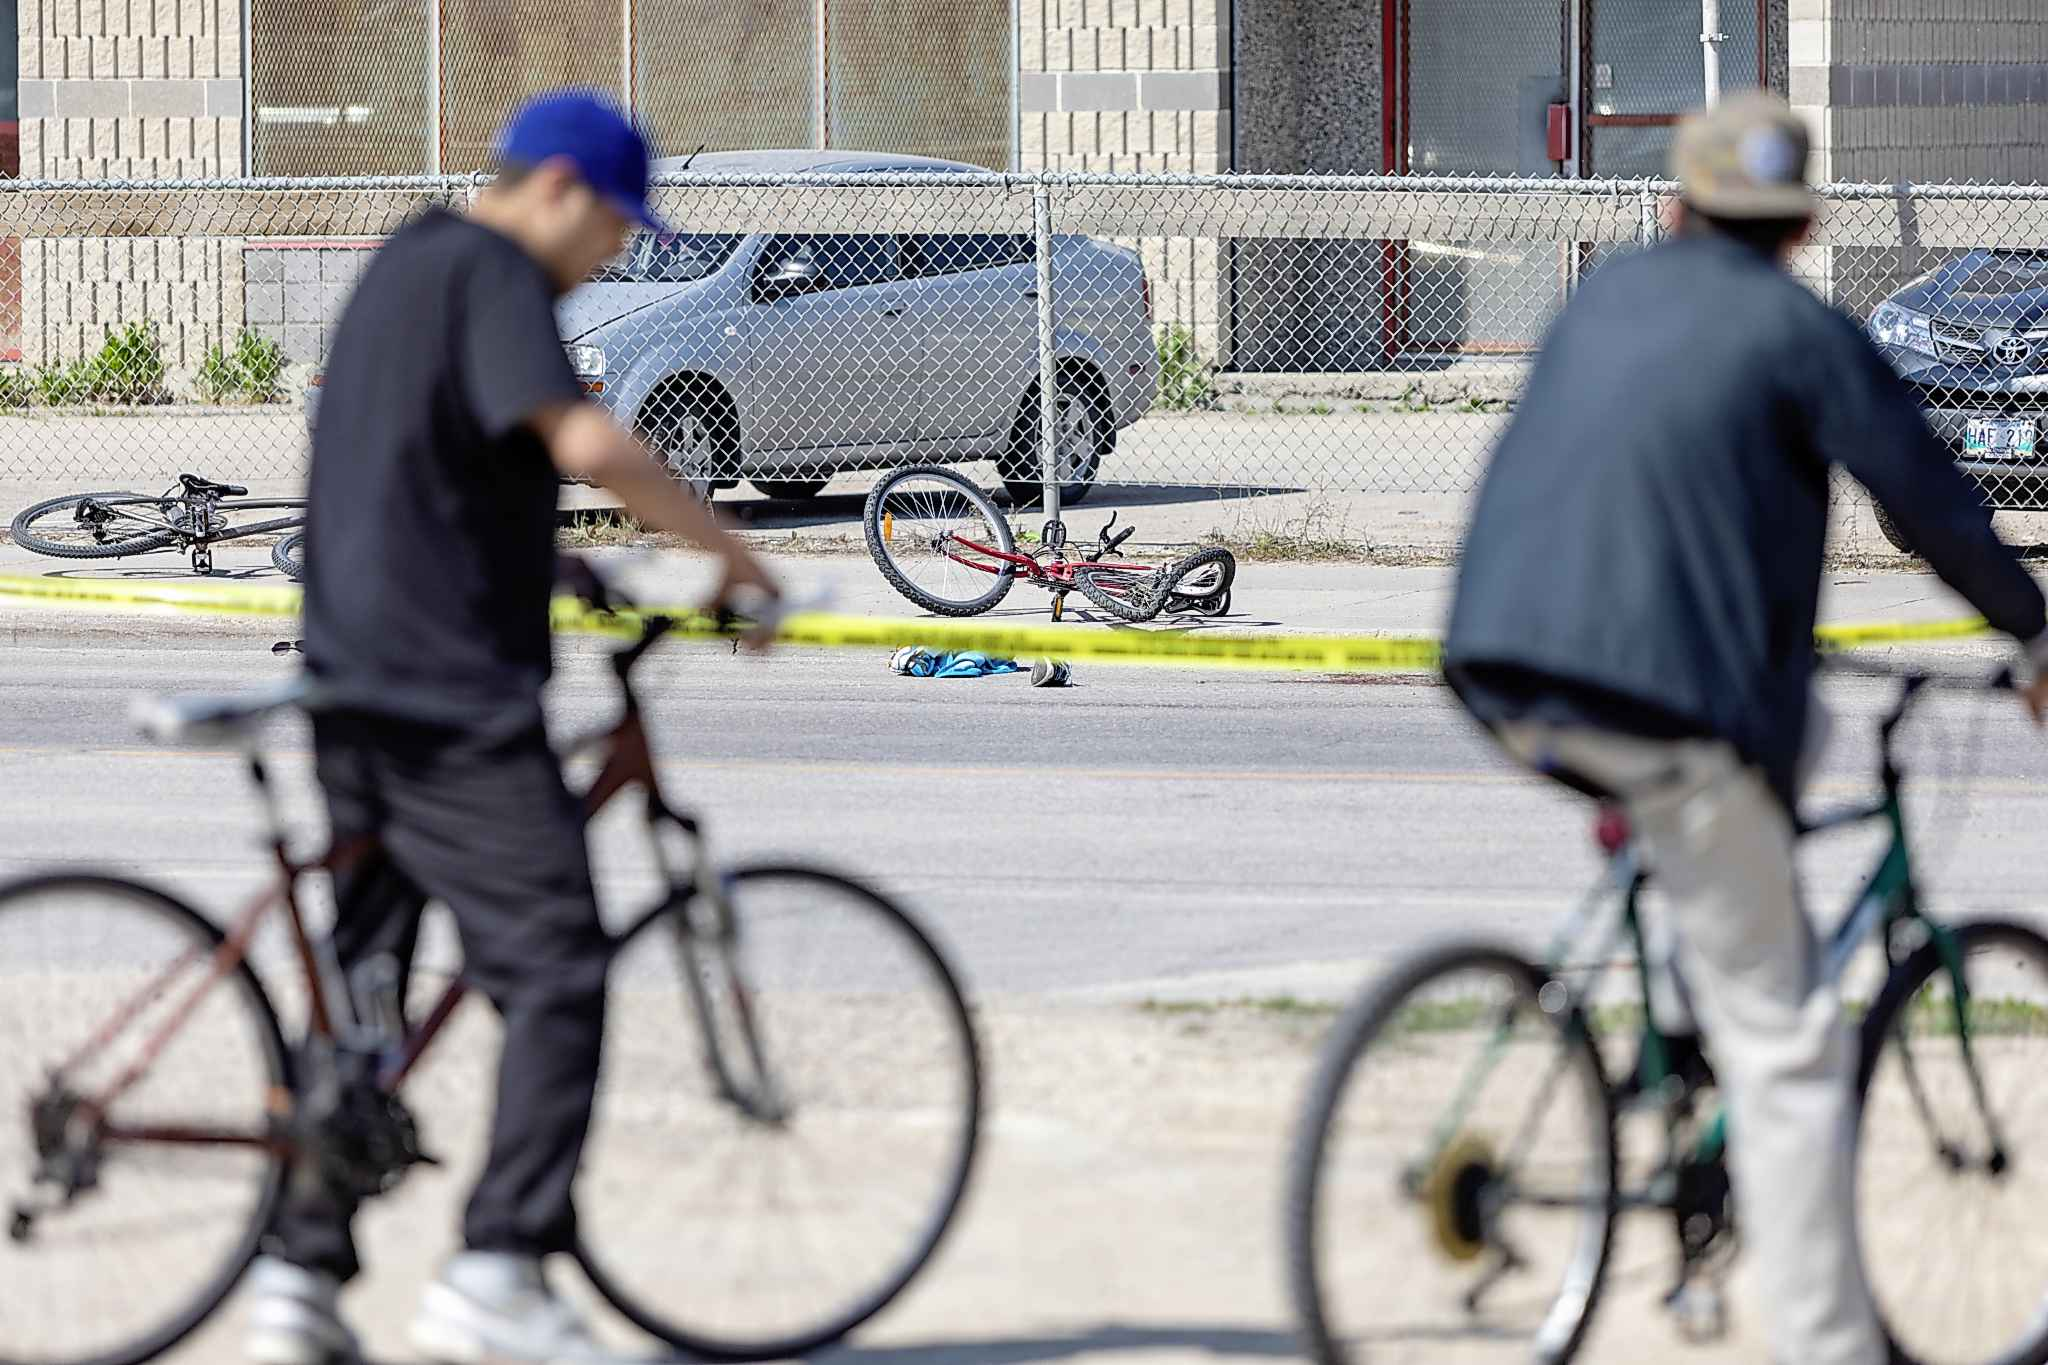 SASHA SEFTER / WINNIPEG FREE PRESS FILES</p><p>Two cyclists stop to survey the scene of a recent fatal accident involving a truck and a cyclist on Higgins Avenue between Princess and King Streets. Of the total Winnipeg collisions reported in 2012-15, about 36 per cent of the fatal collisions involved a pedestrian.</p>